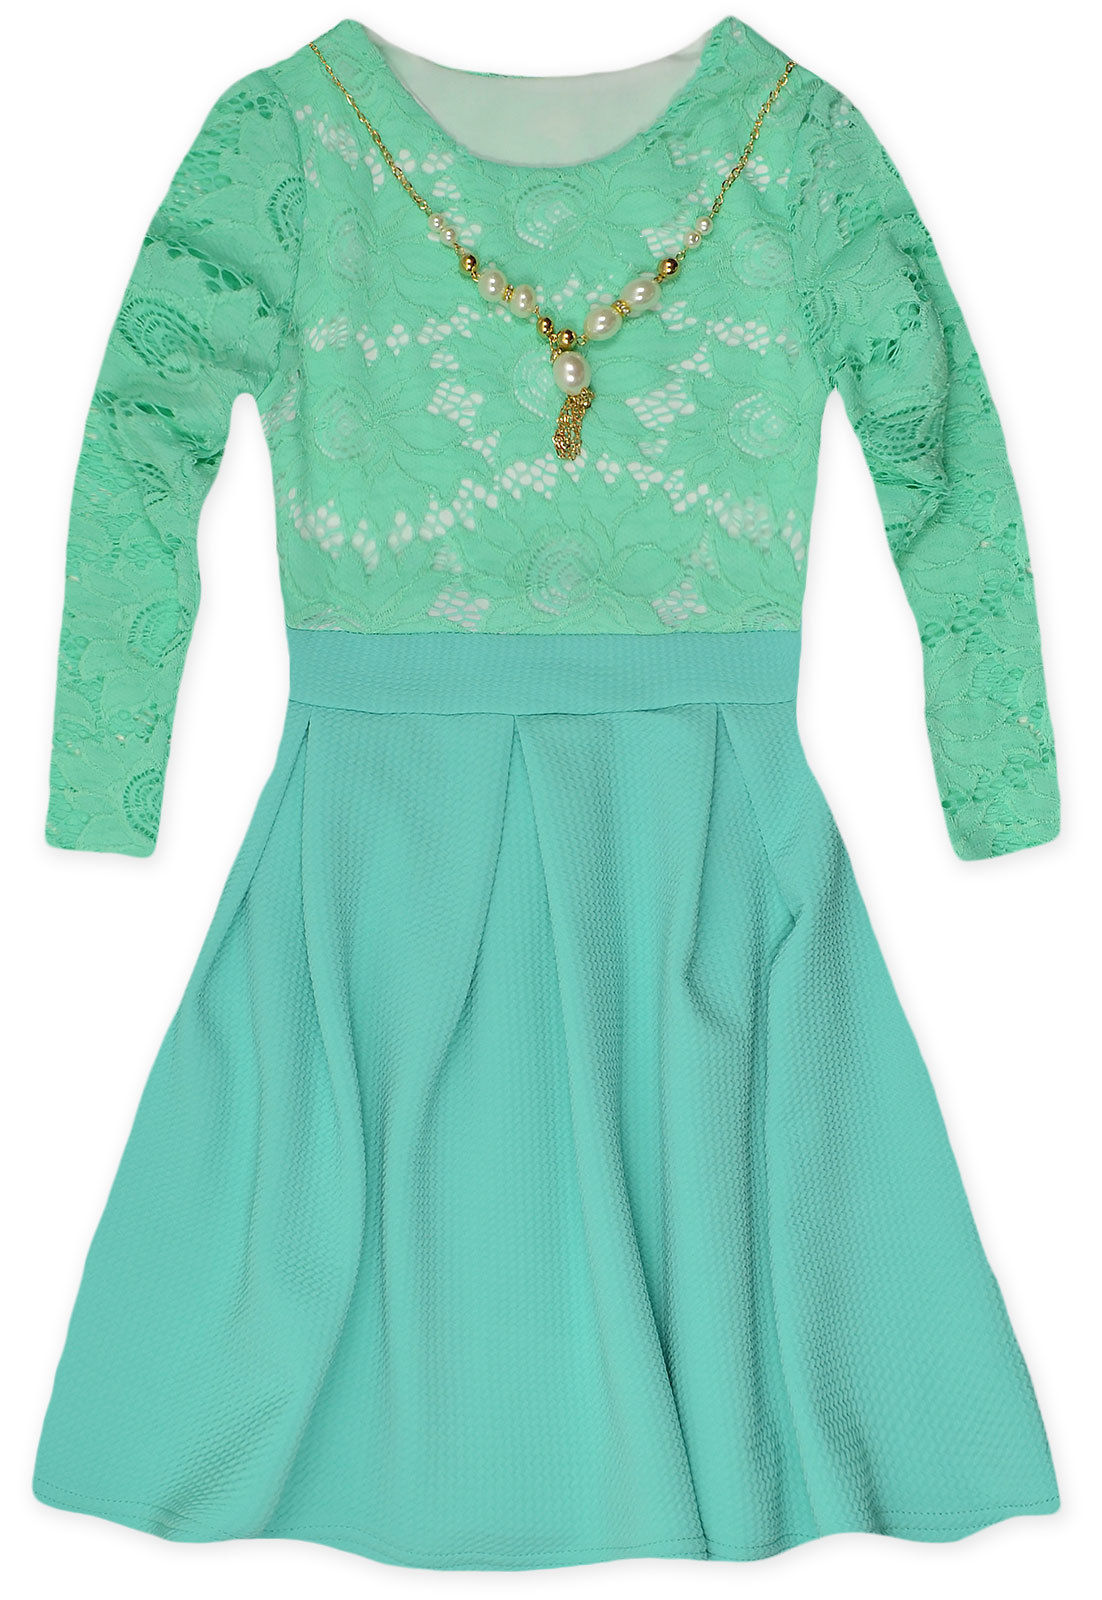 Girls Long Sleeved Lace Top Waffle Skirt Dress New Kids Party ...